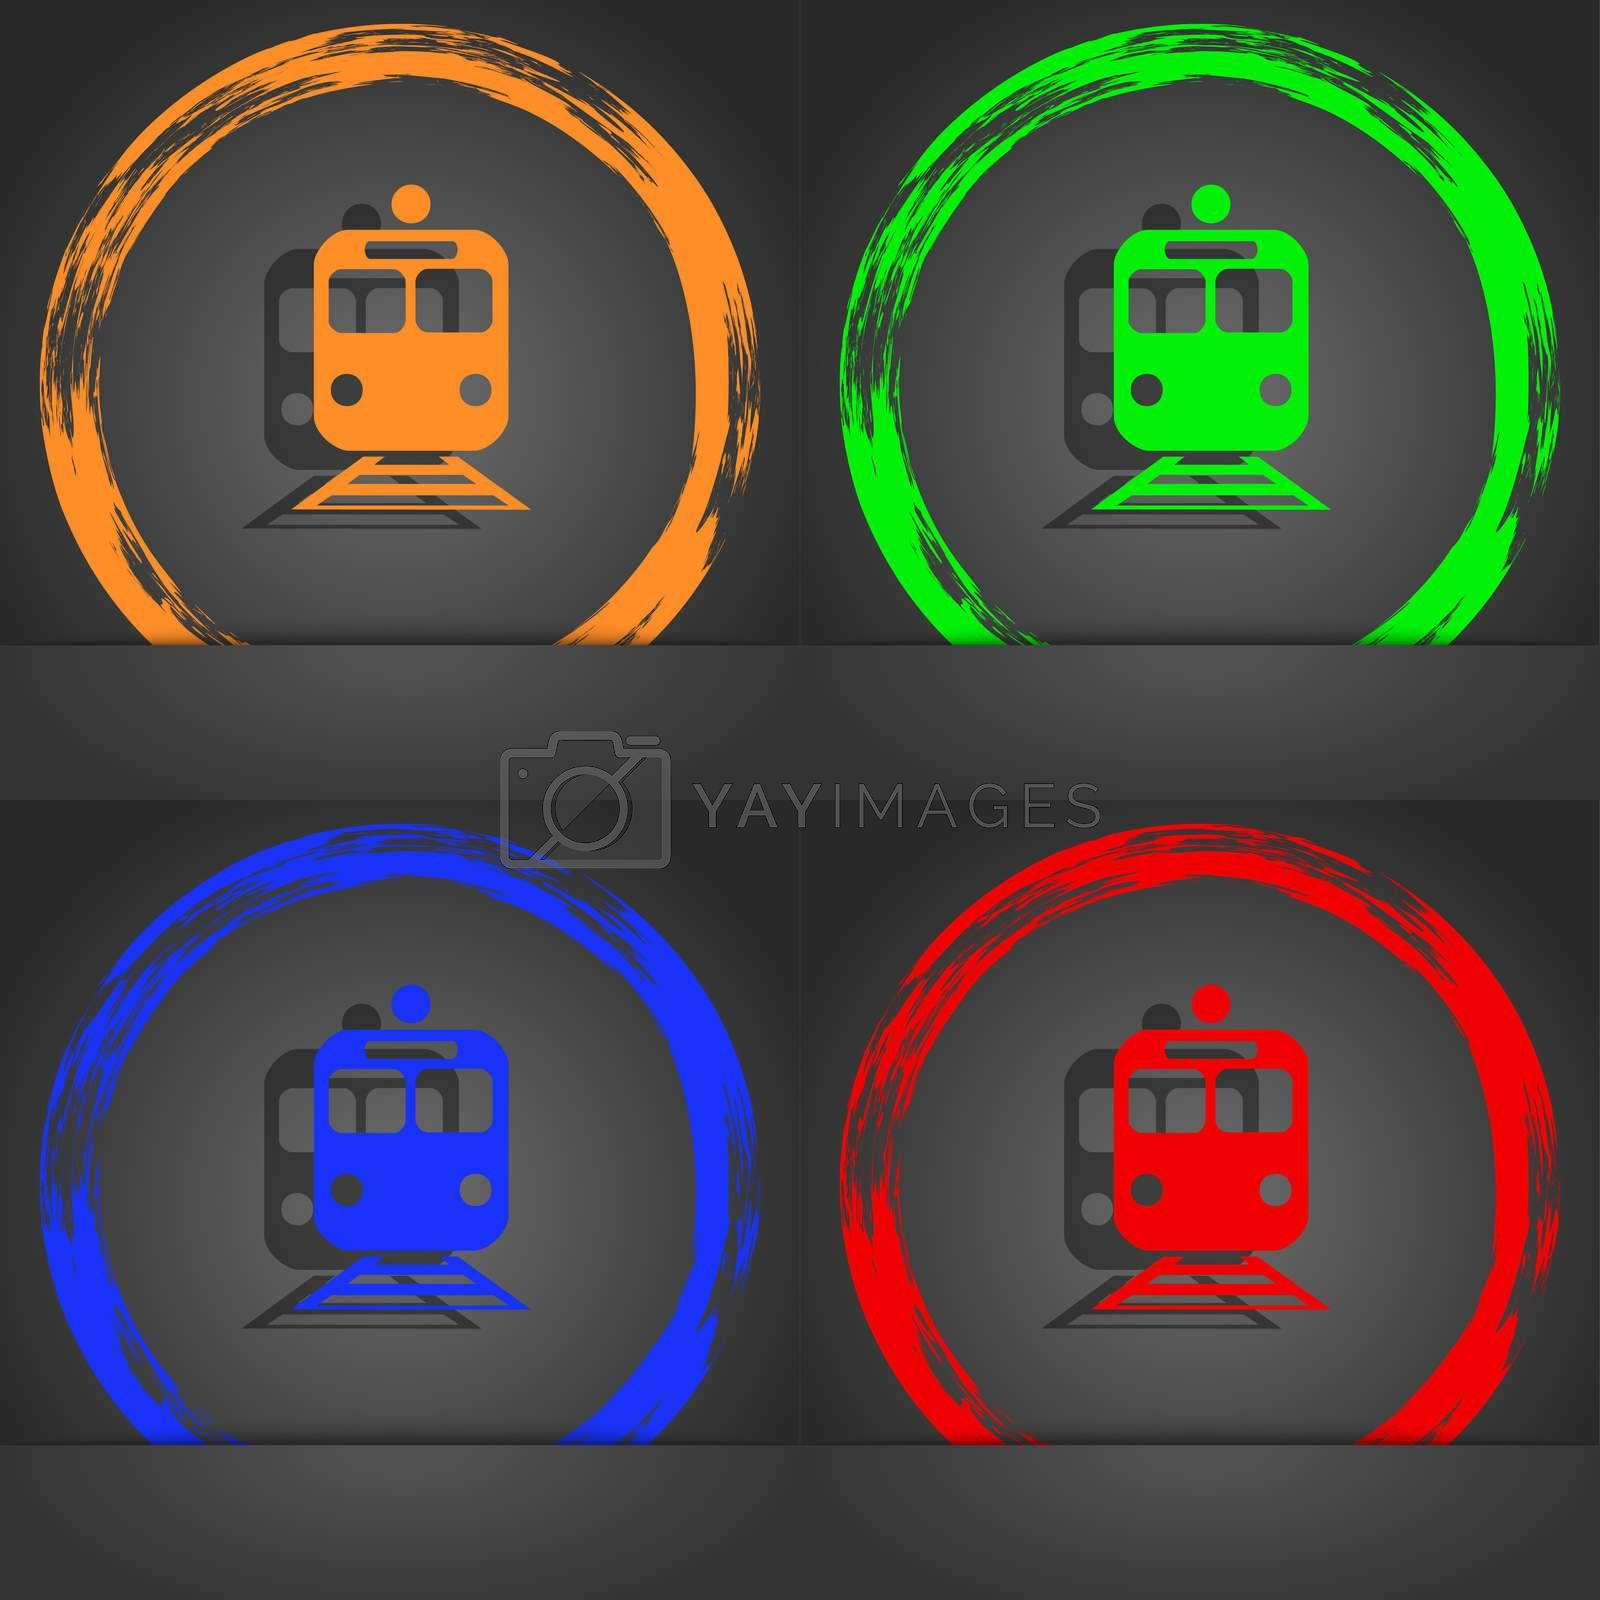 train icon symbol. Fashionable modern style. In the orange, green, blue, green design. illustration